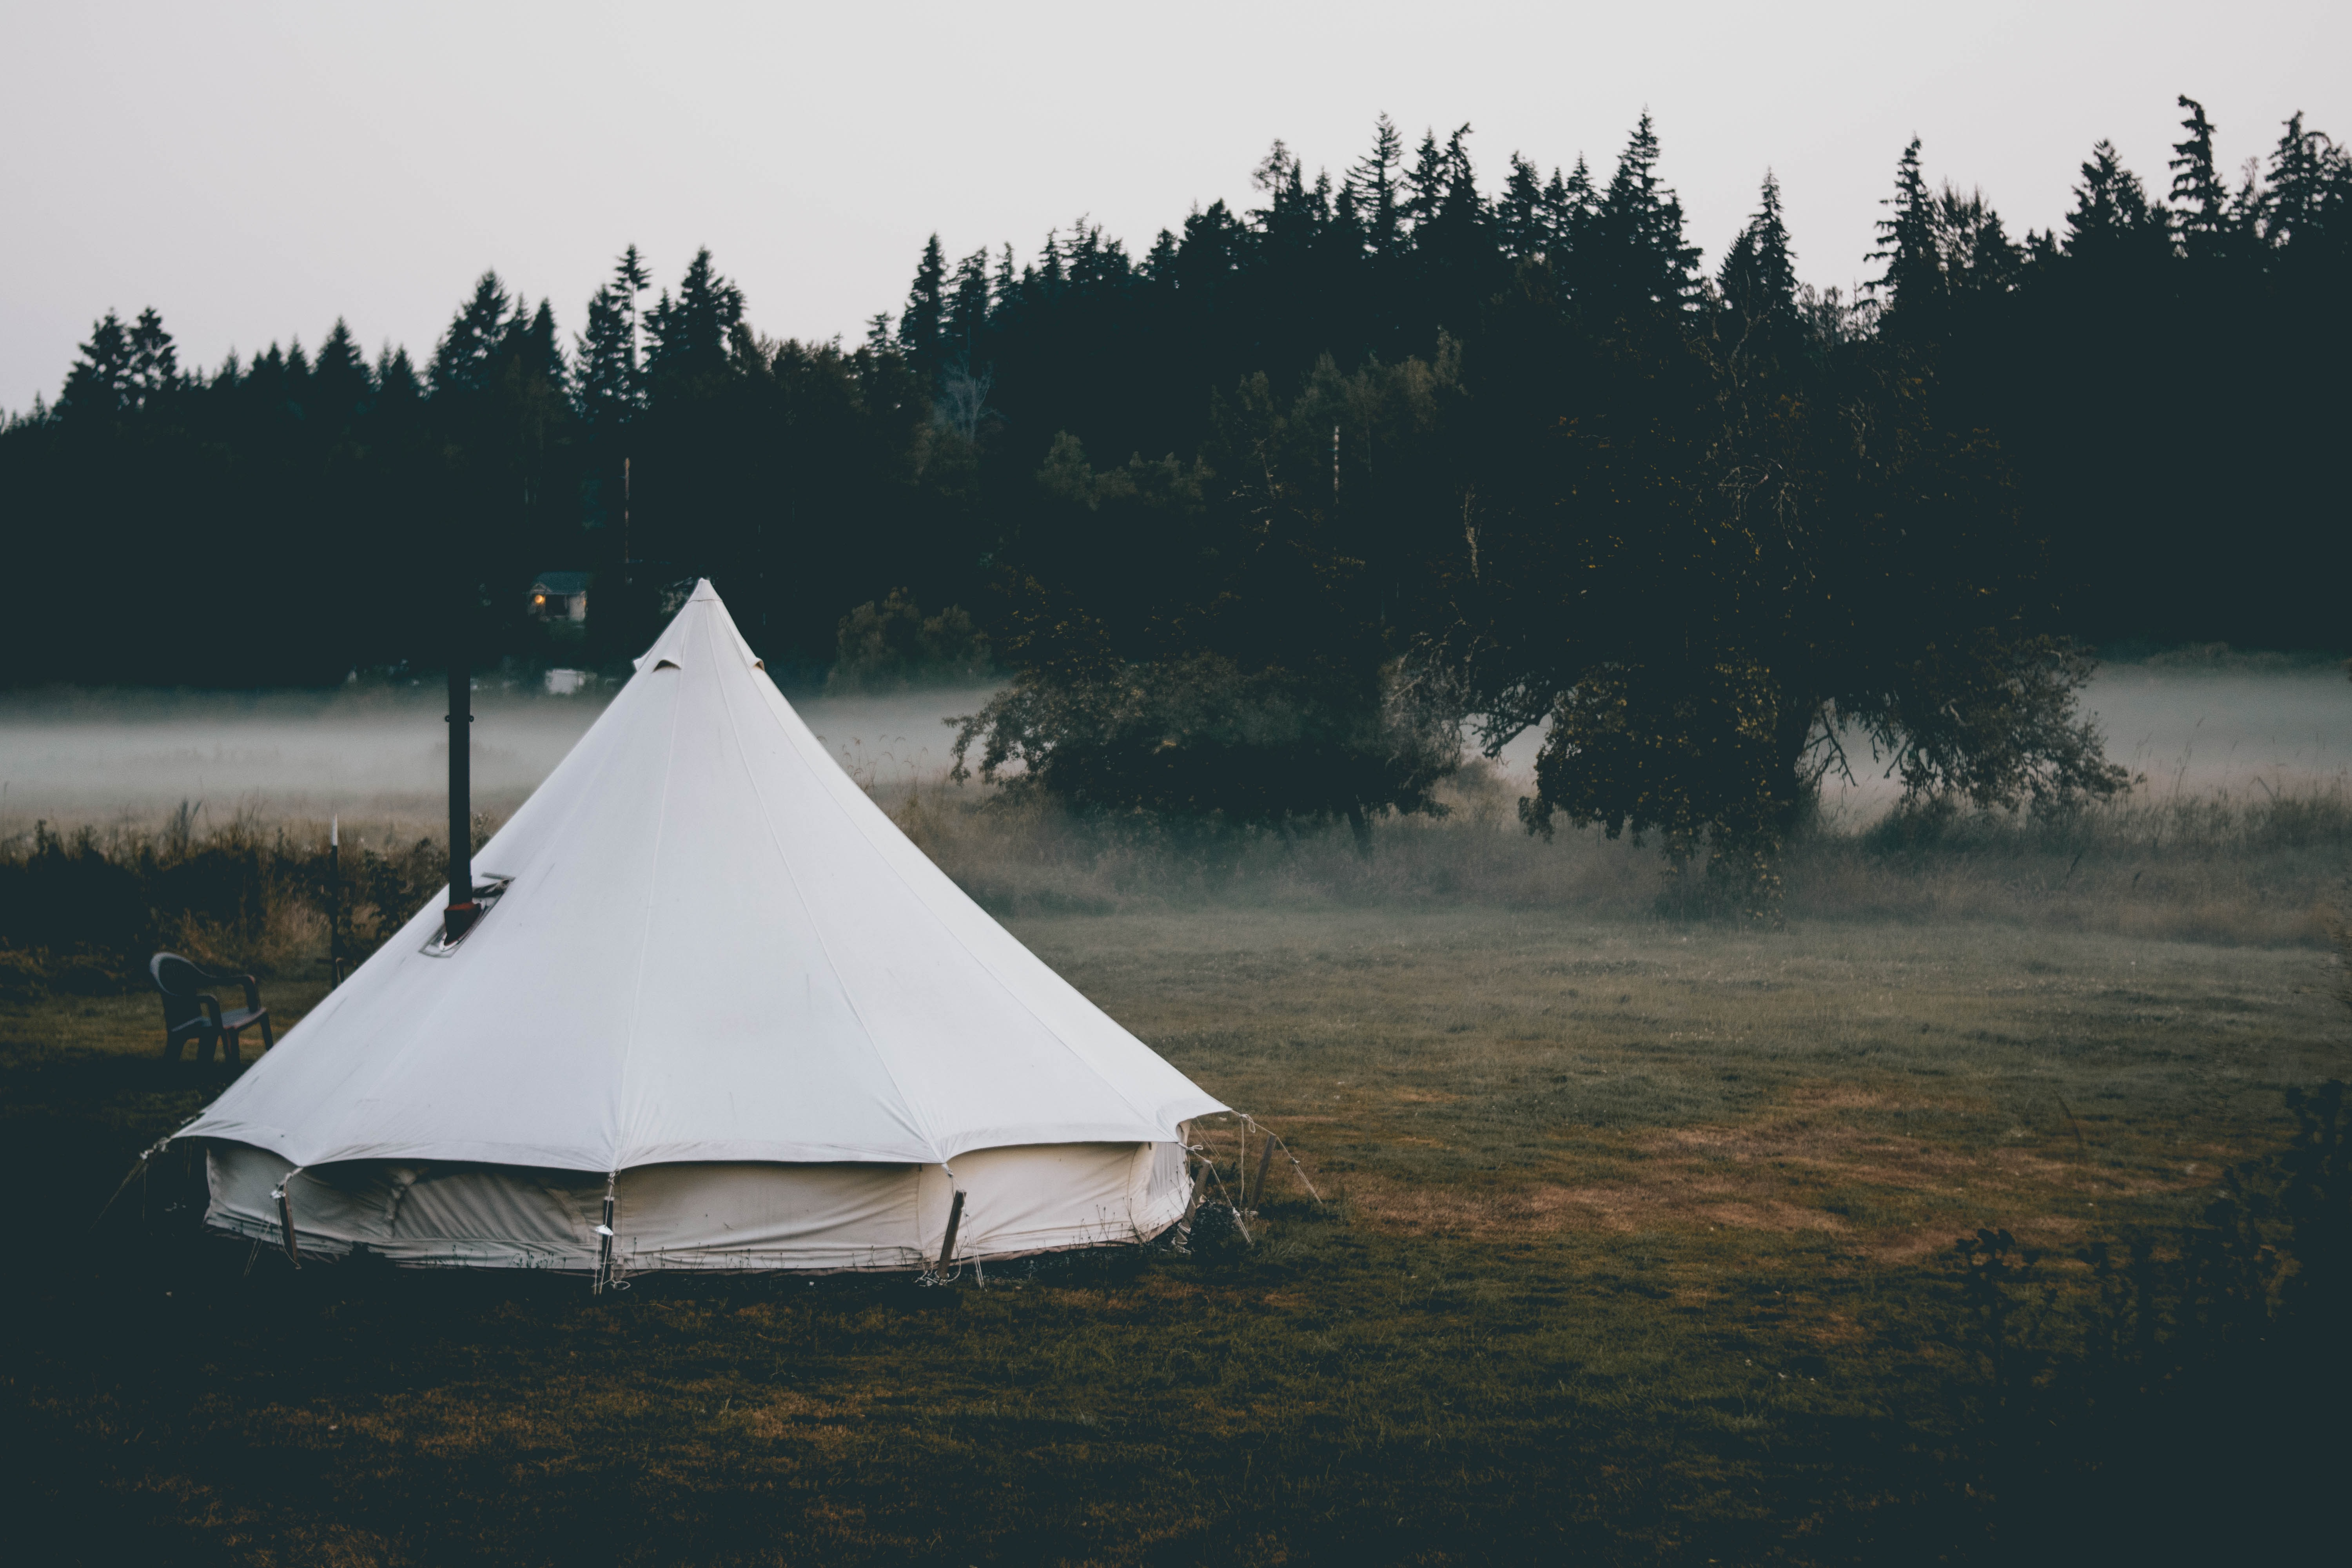 white tent near trees during day